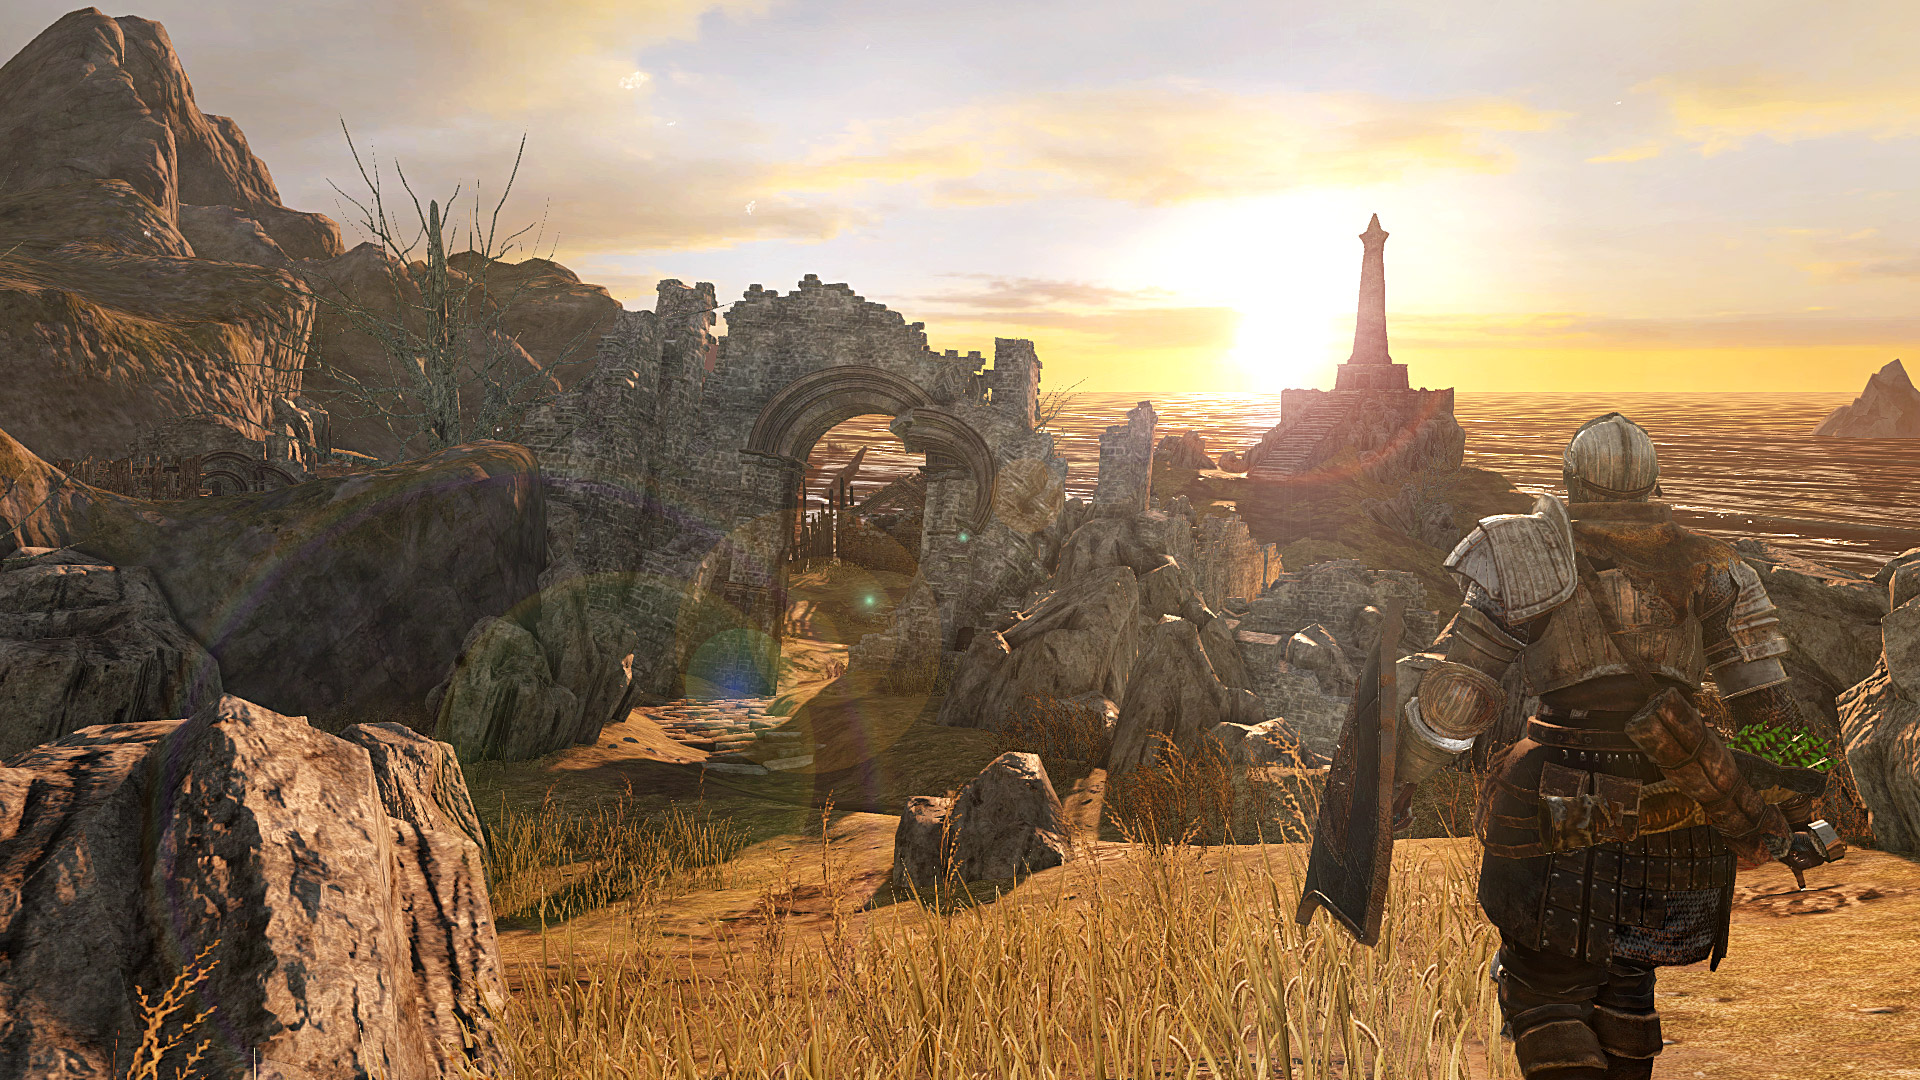 Dark Souls 2 coming to PlayStation 4 and Xbox One in 2015